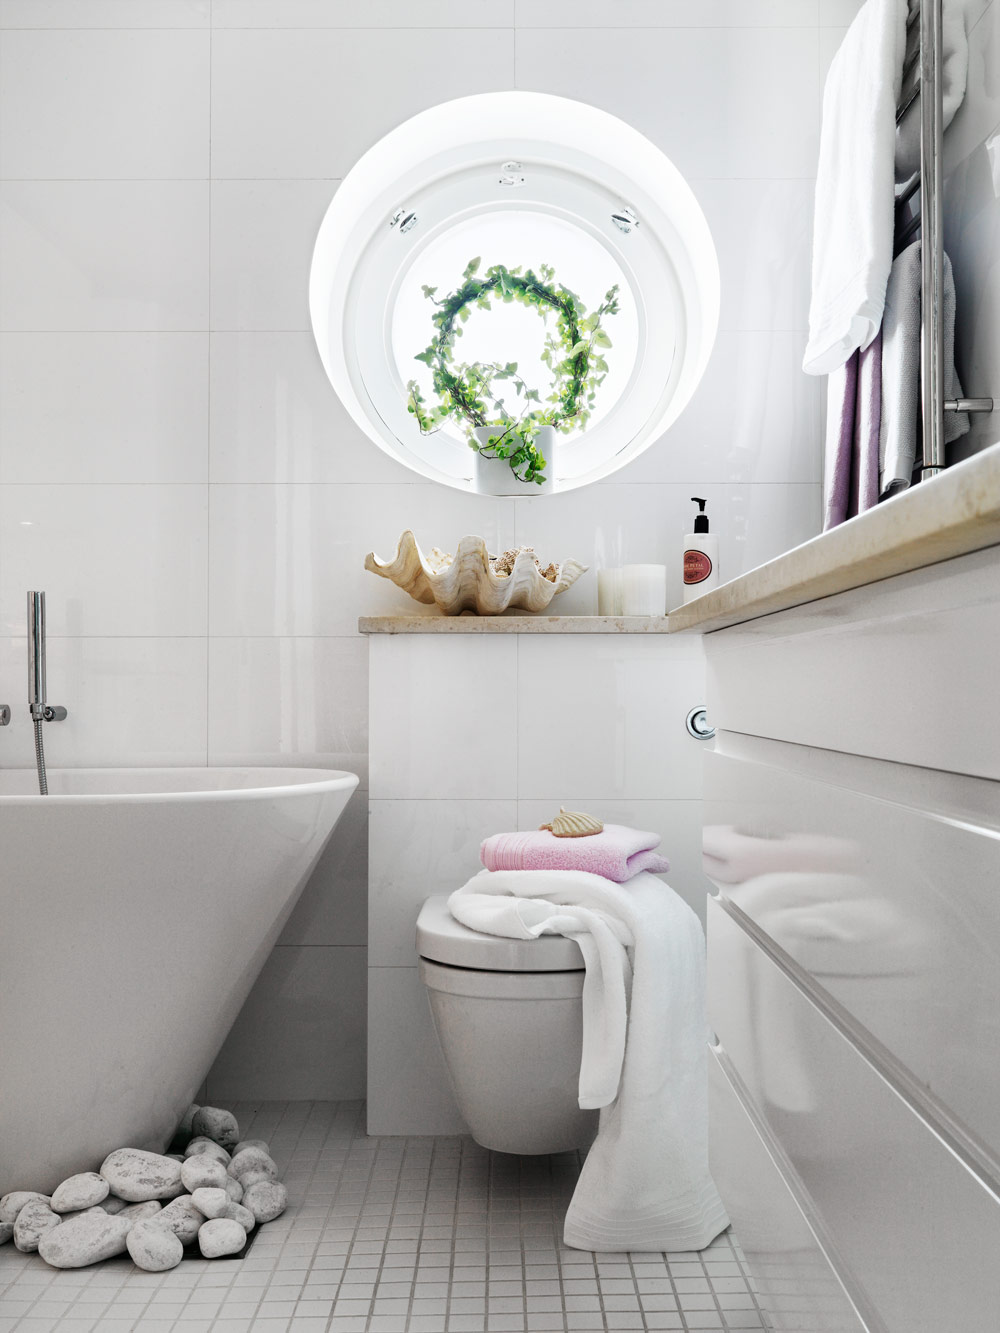 Stylish small bathroom with an unusual decor digsdigs for Small lavatory designs